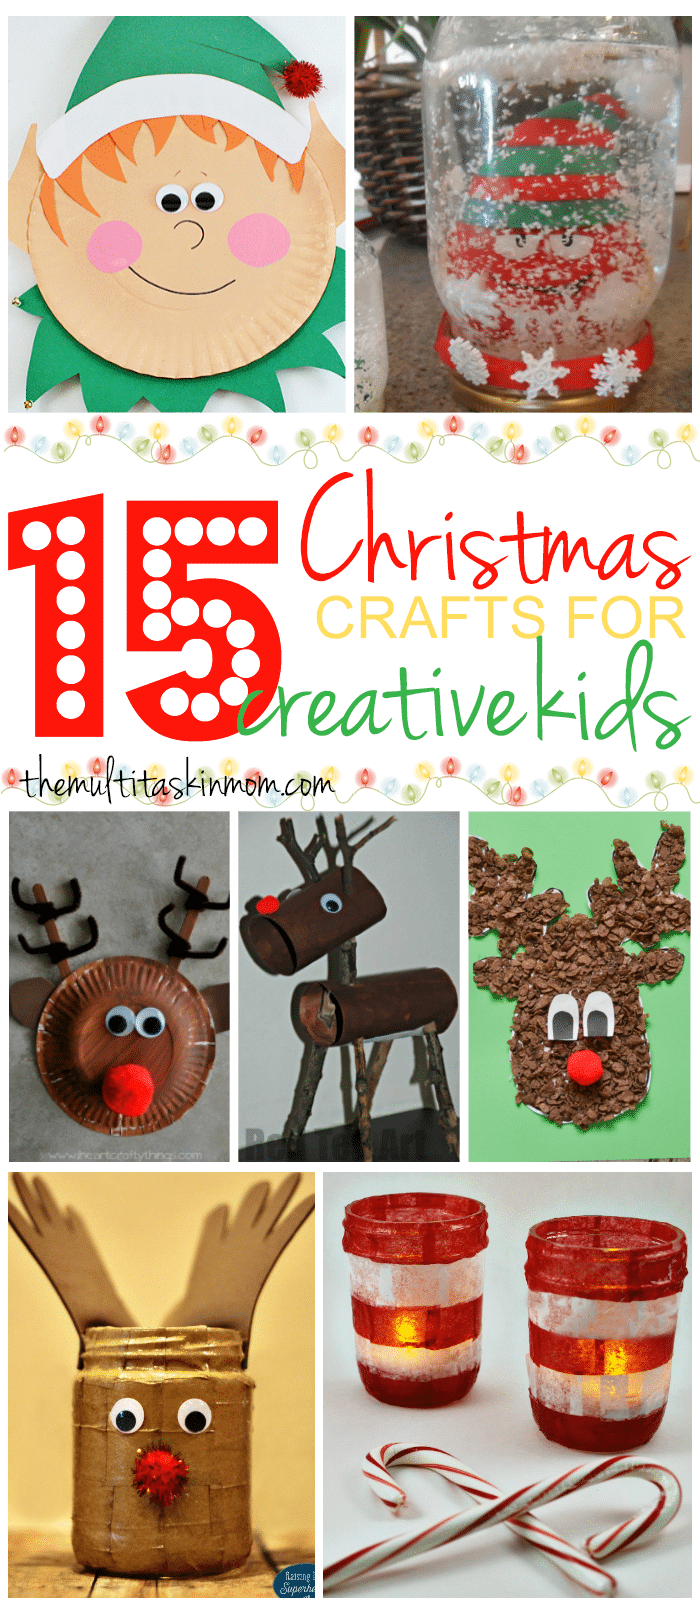 15-christmas-crafts-for-creative-kids-you-will-want-to-make-today